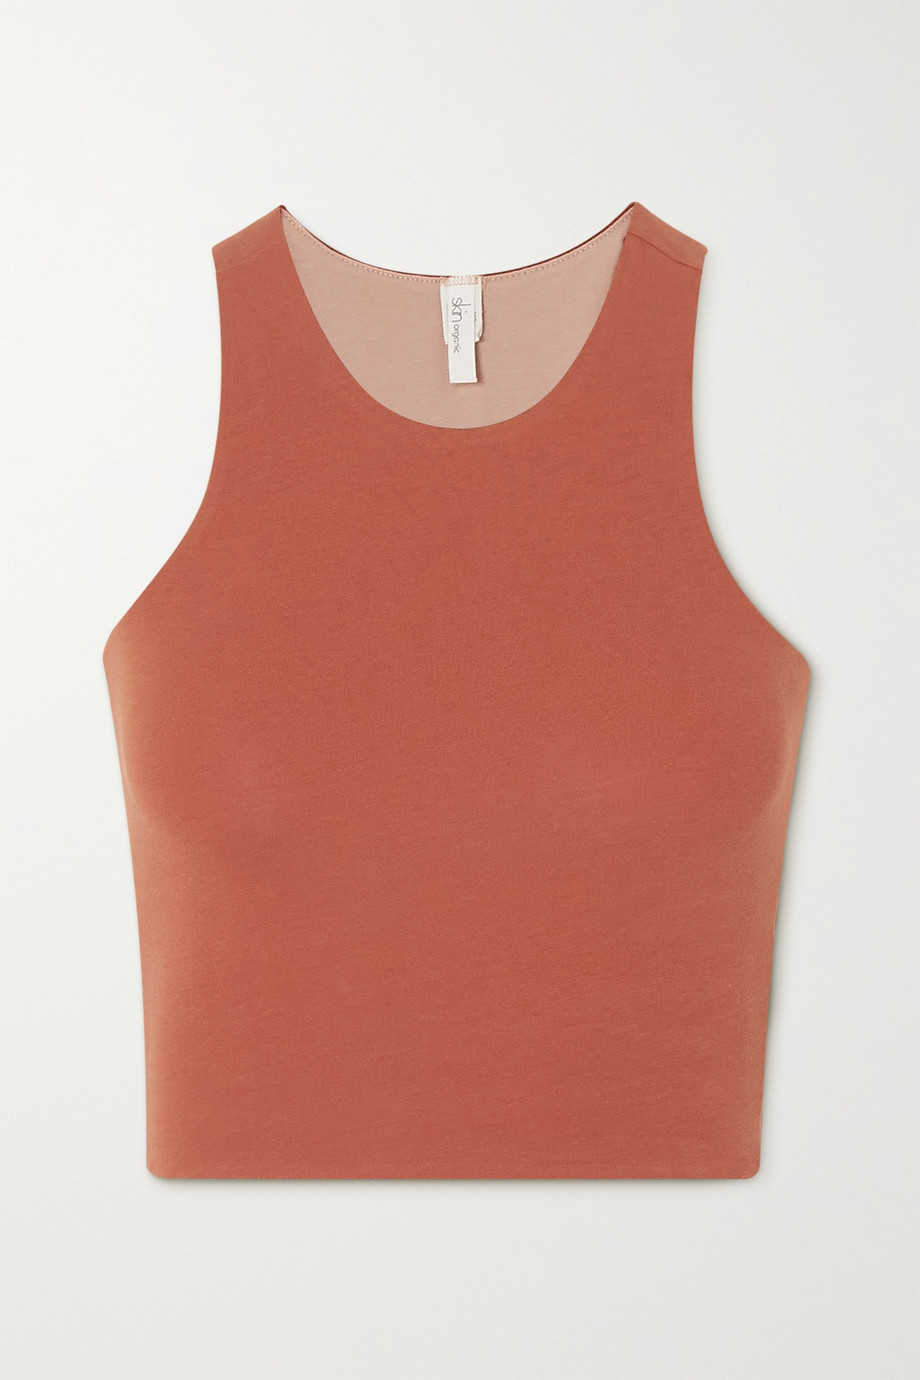 SKIN + NET SUSTAIN Calliope reversible cropped stretch organic Pima cotton-jersey tank